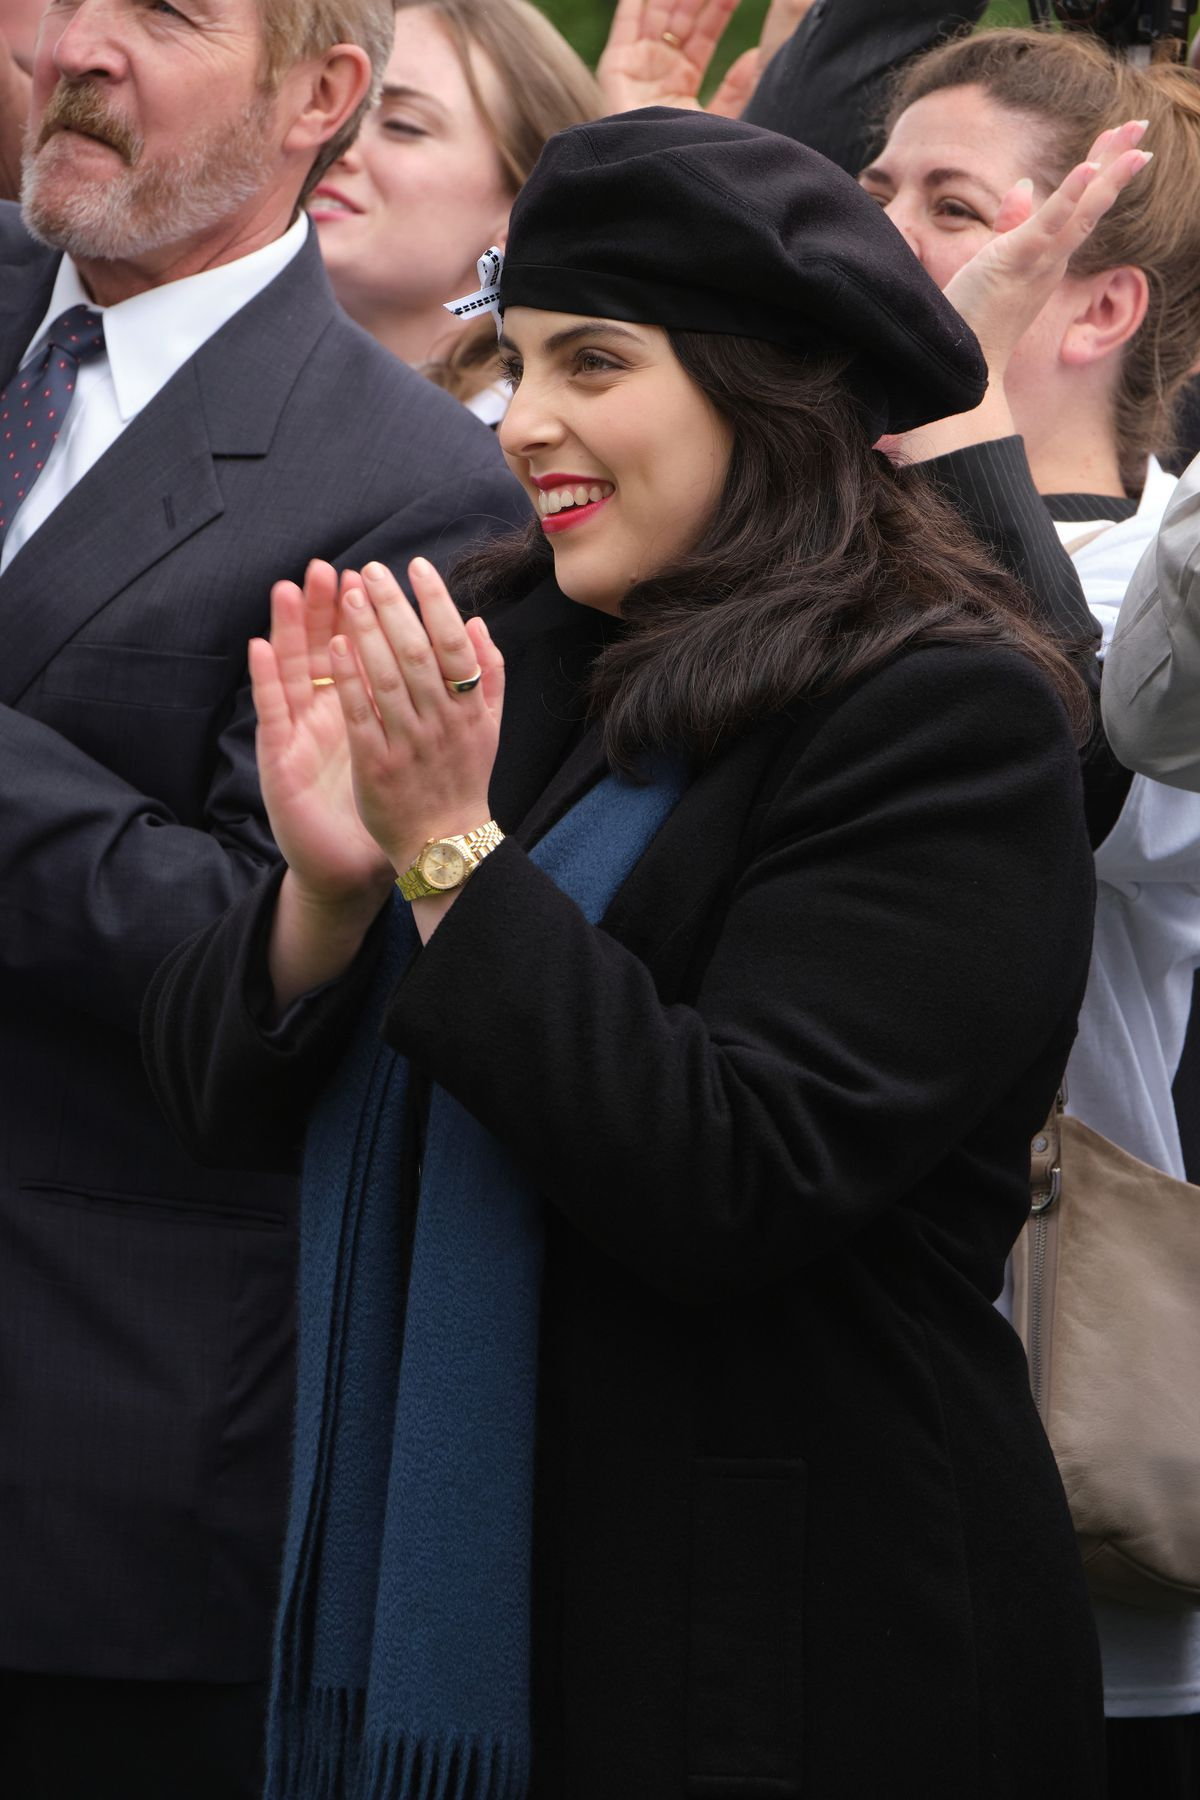 A dark-haired woman in a blue beret and red lipstick stands in a crowd, applauding an unseen figure.